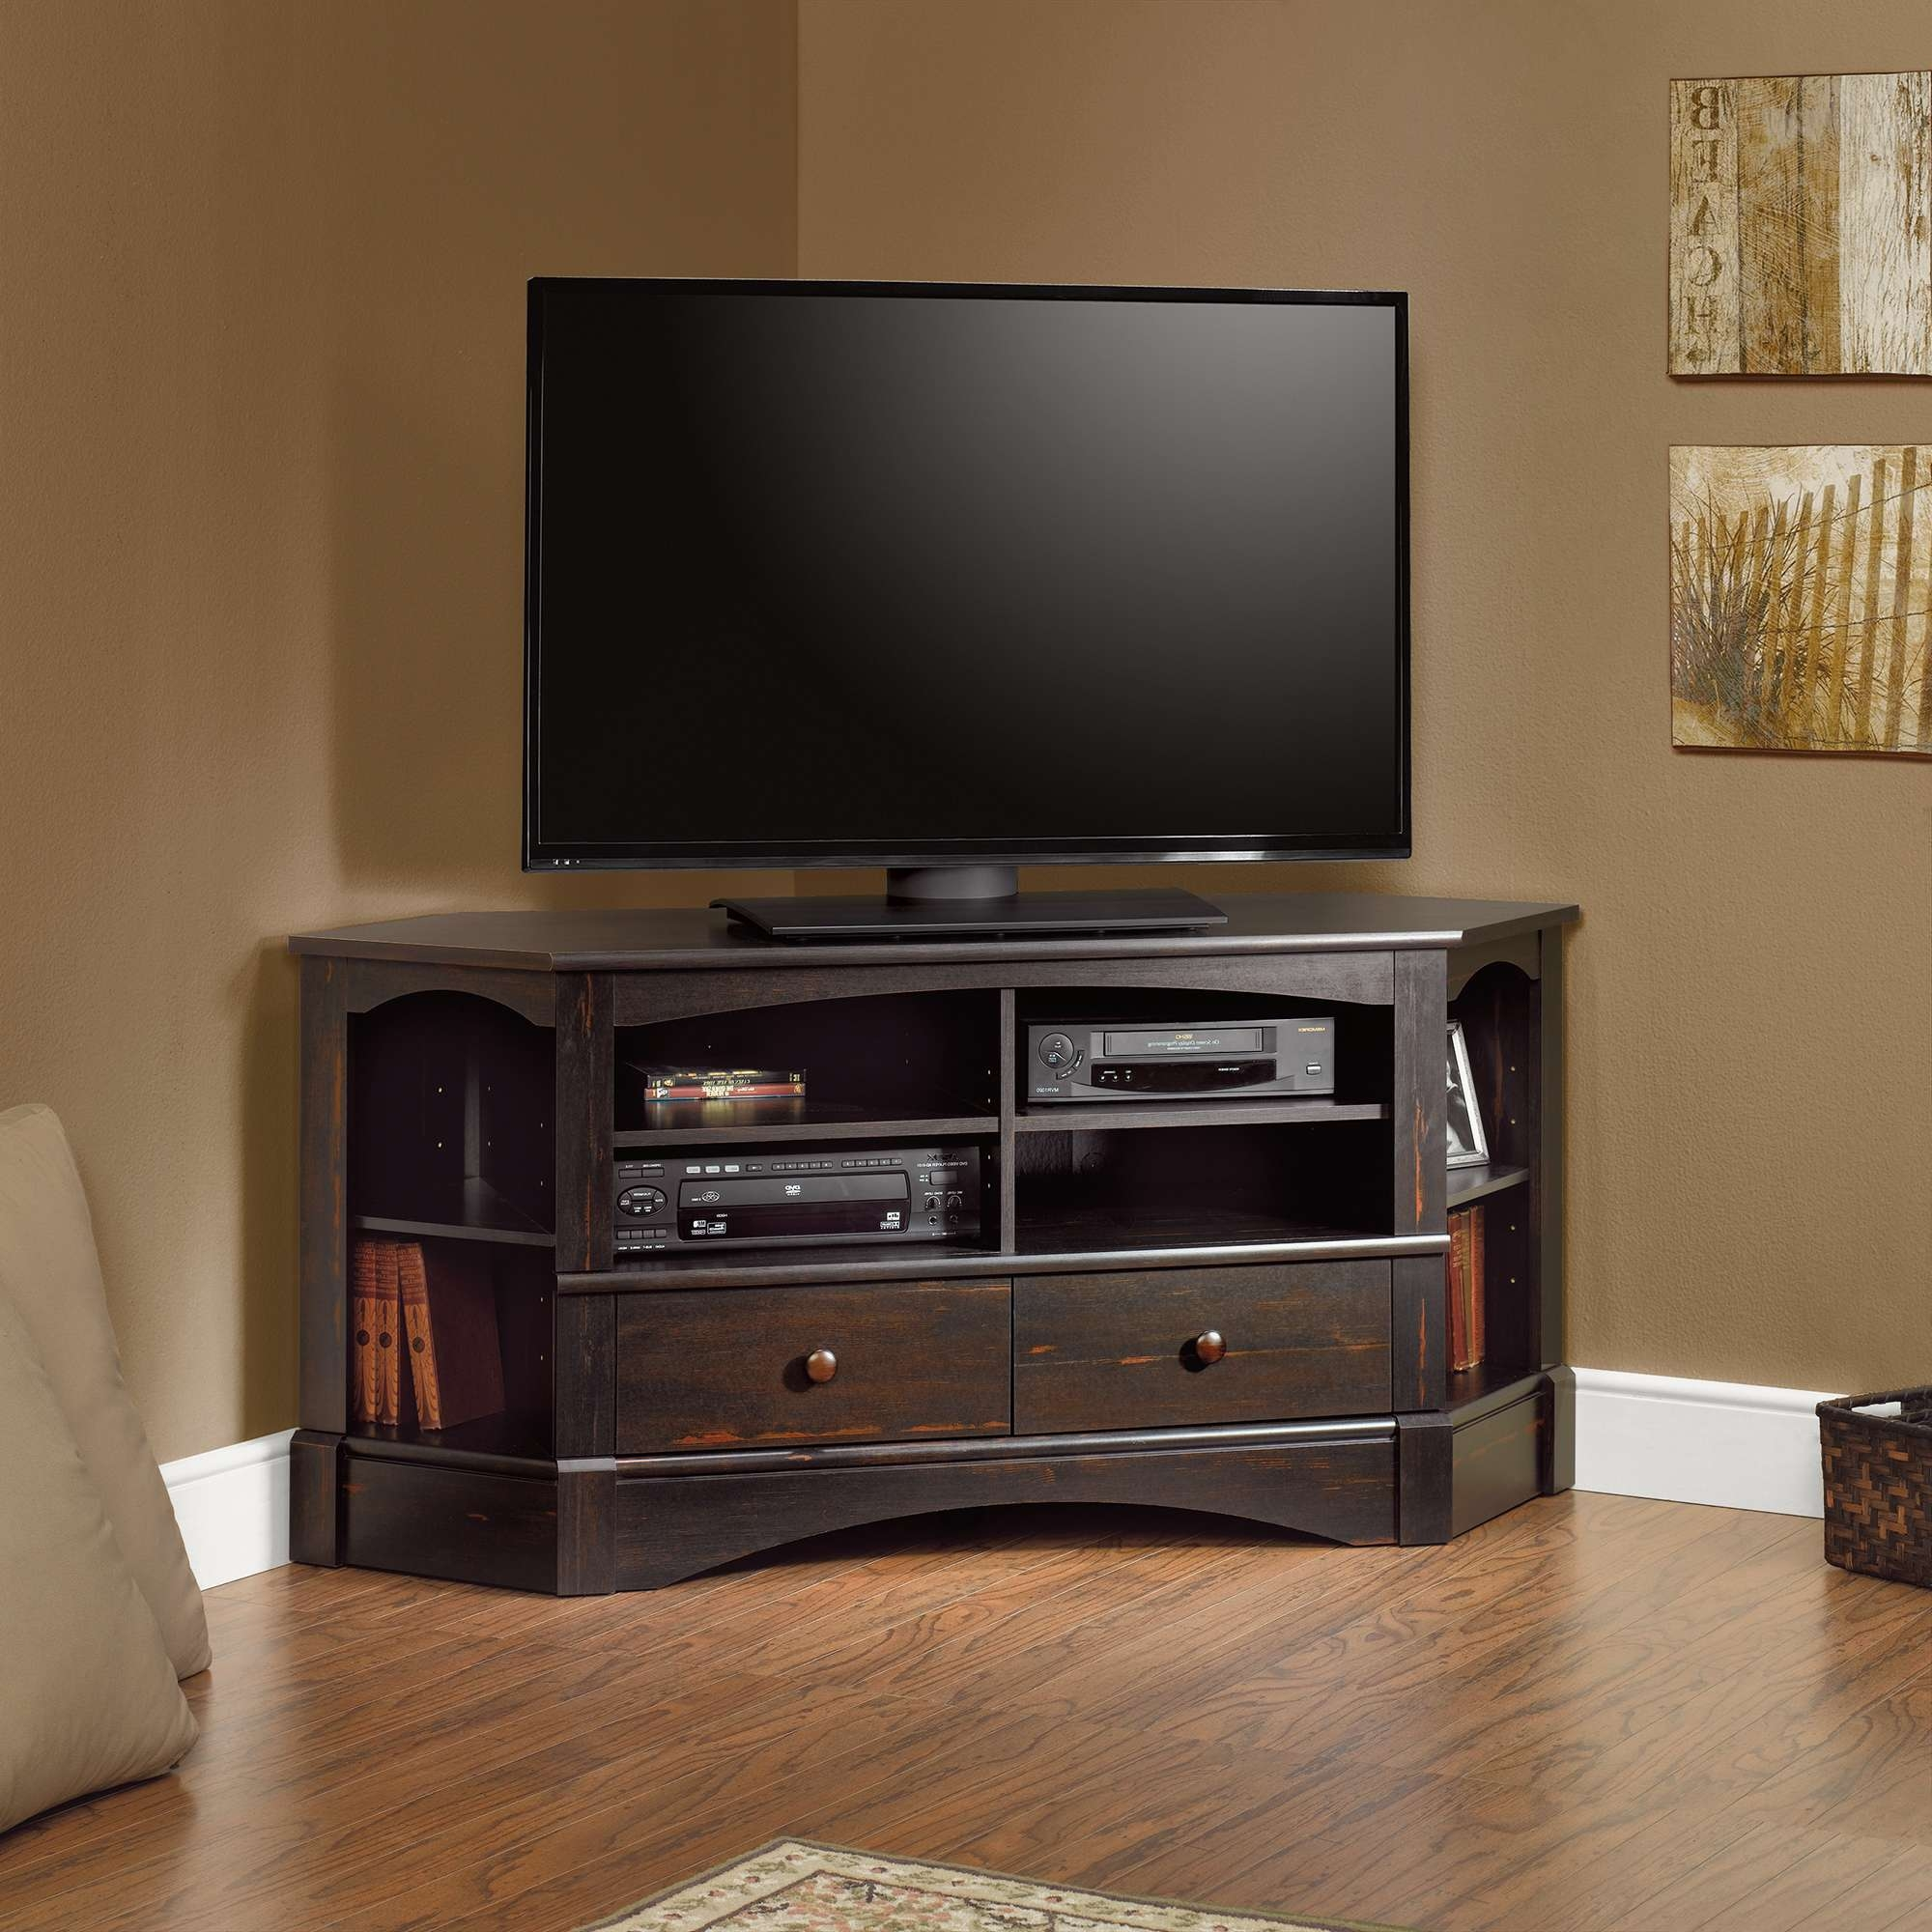 Harbor View | Corner Entertainment Credenza | 402902 | Sauder With Regard To Painted Corner Tv Cabinets (View 20 of 20)